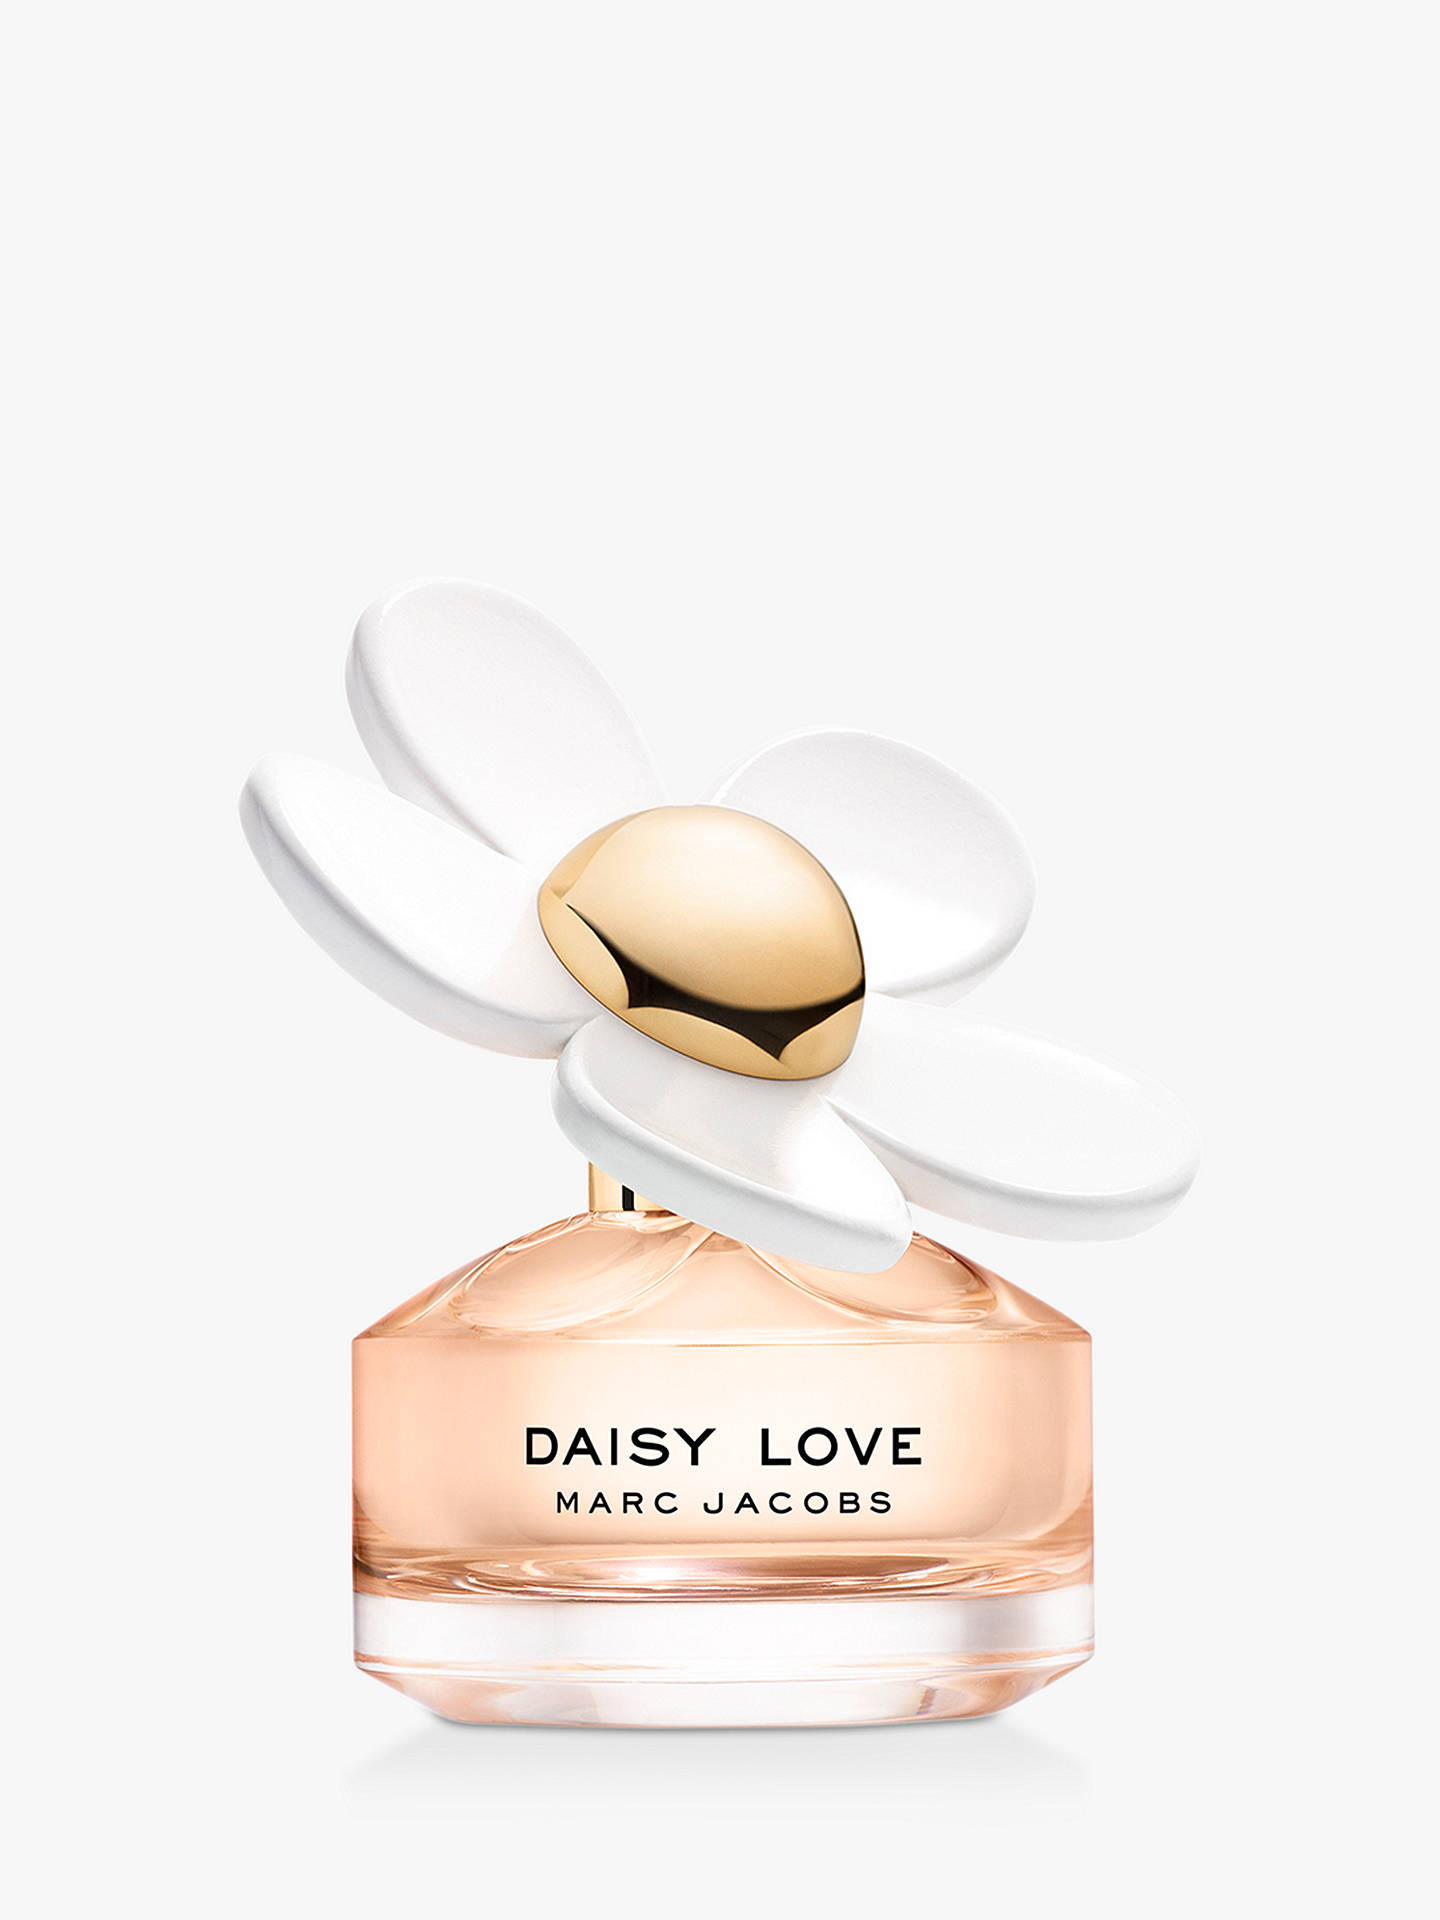 Buy Marc Jacobs Daisy Love Eau de Toilette, 30ml Online at johnlewis.com